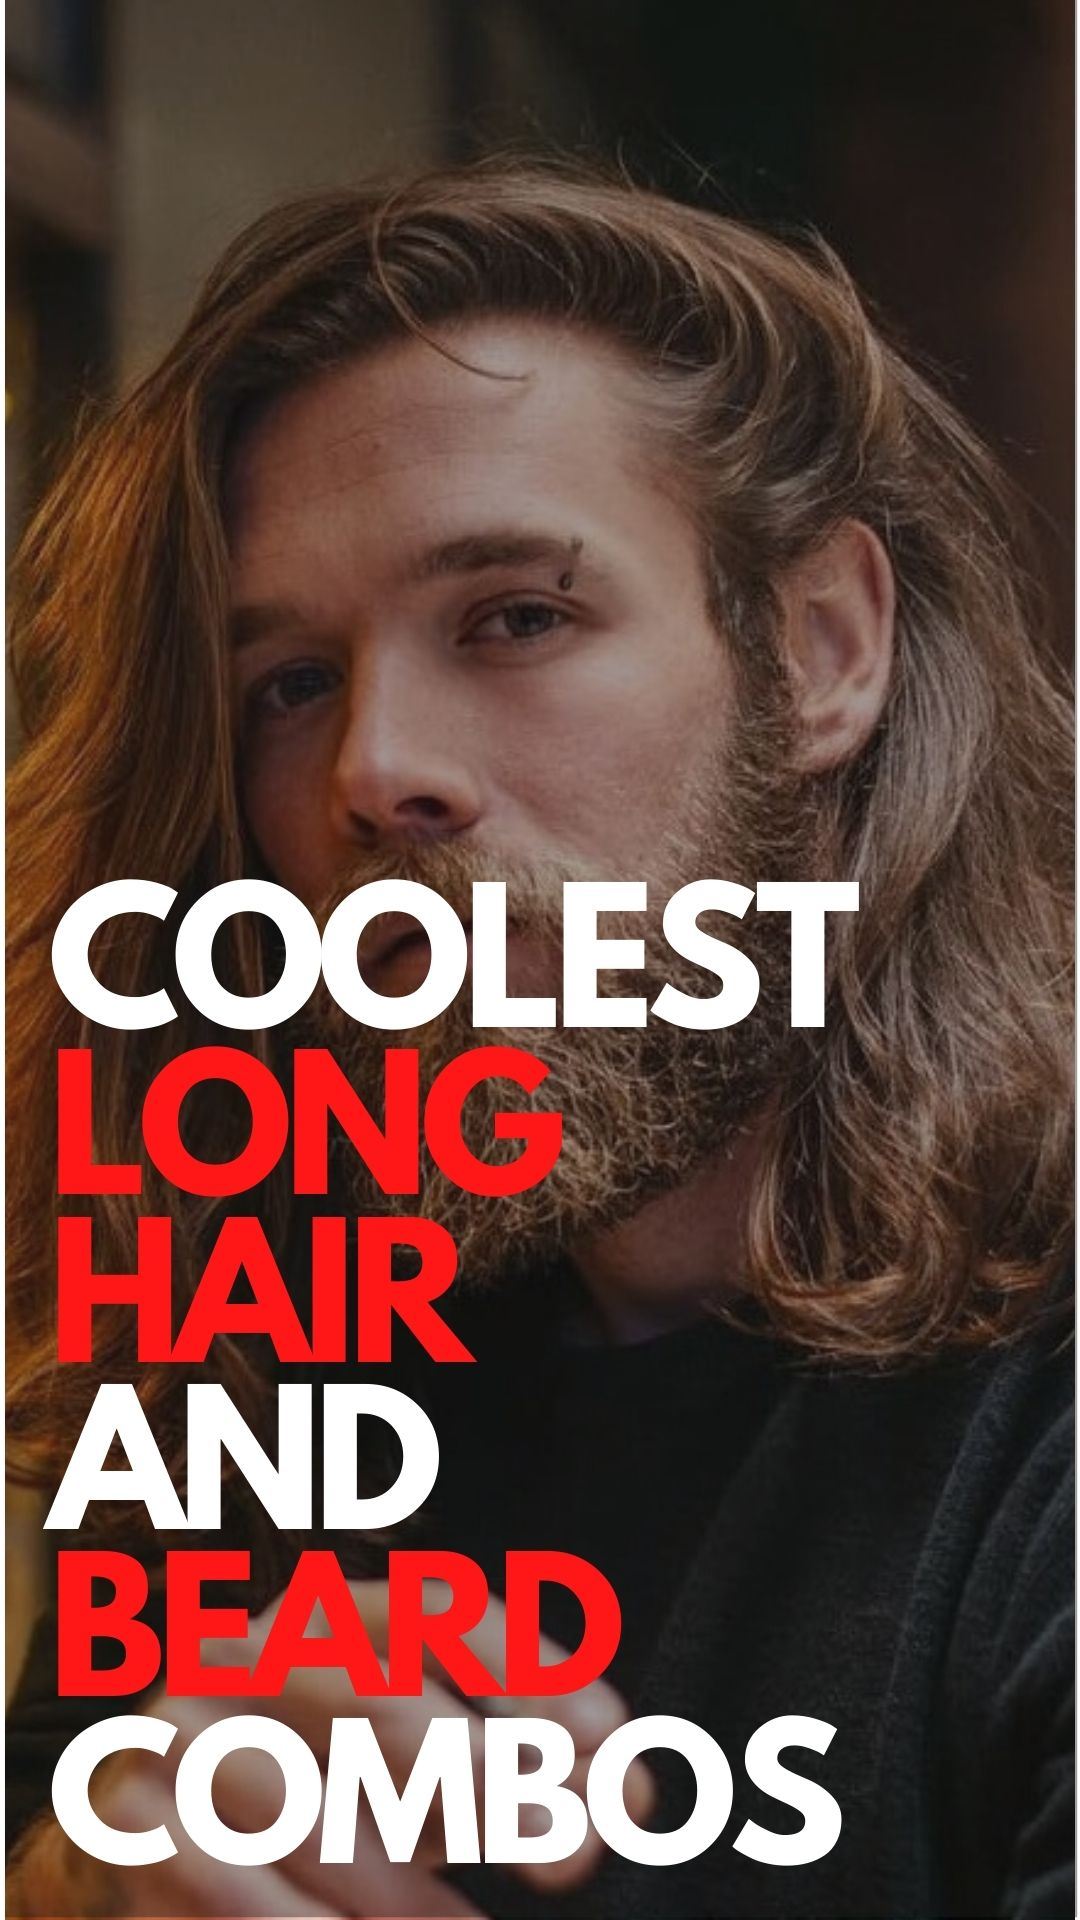 Coolest Long Hair and Beard Combos